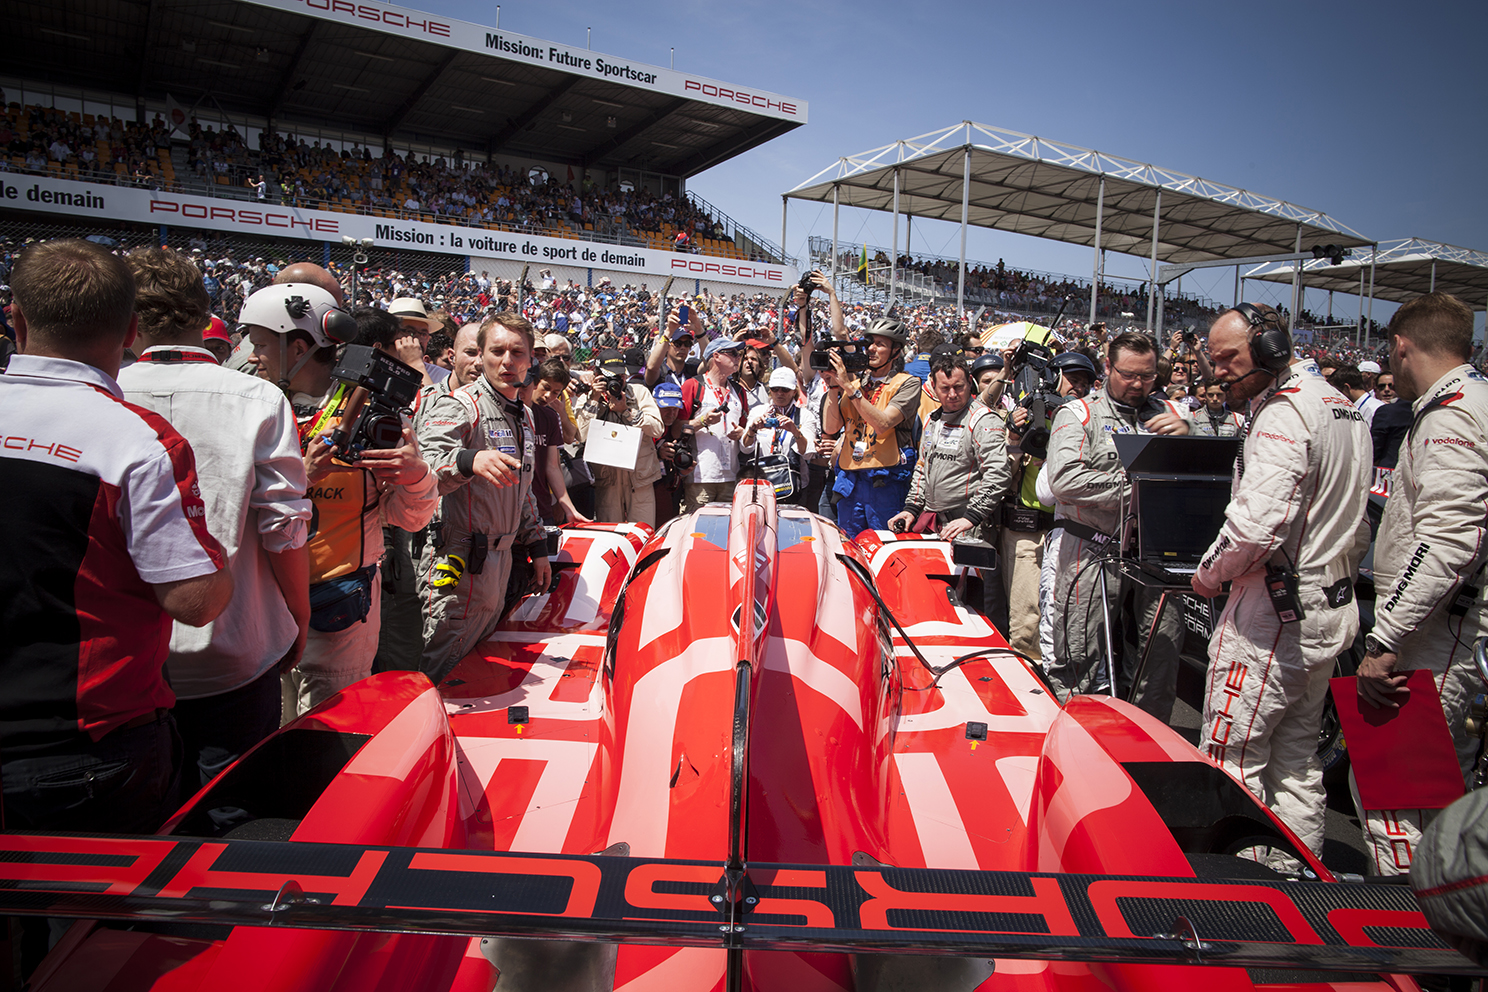 A packed grid at the Le Mans 24 hour race